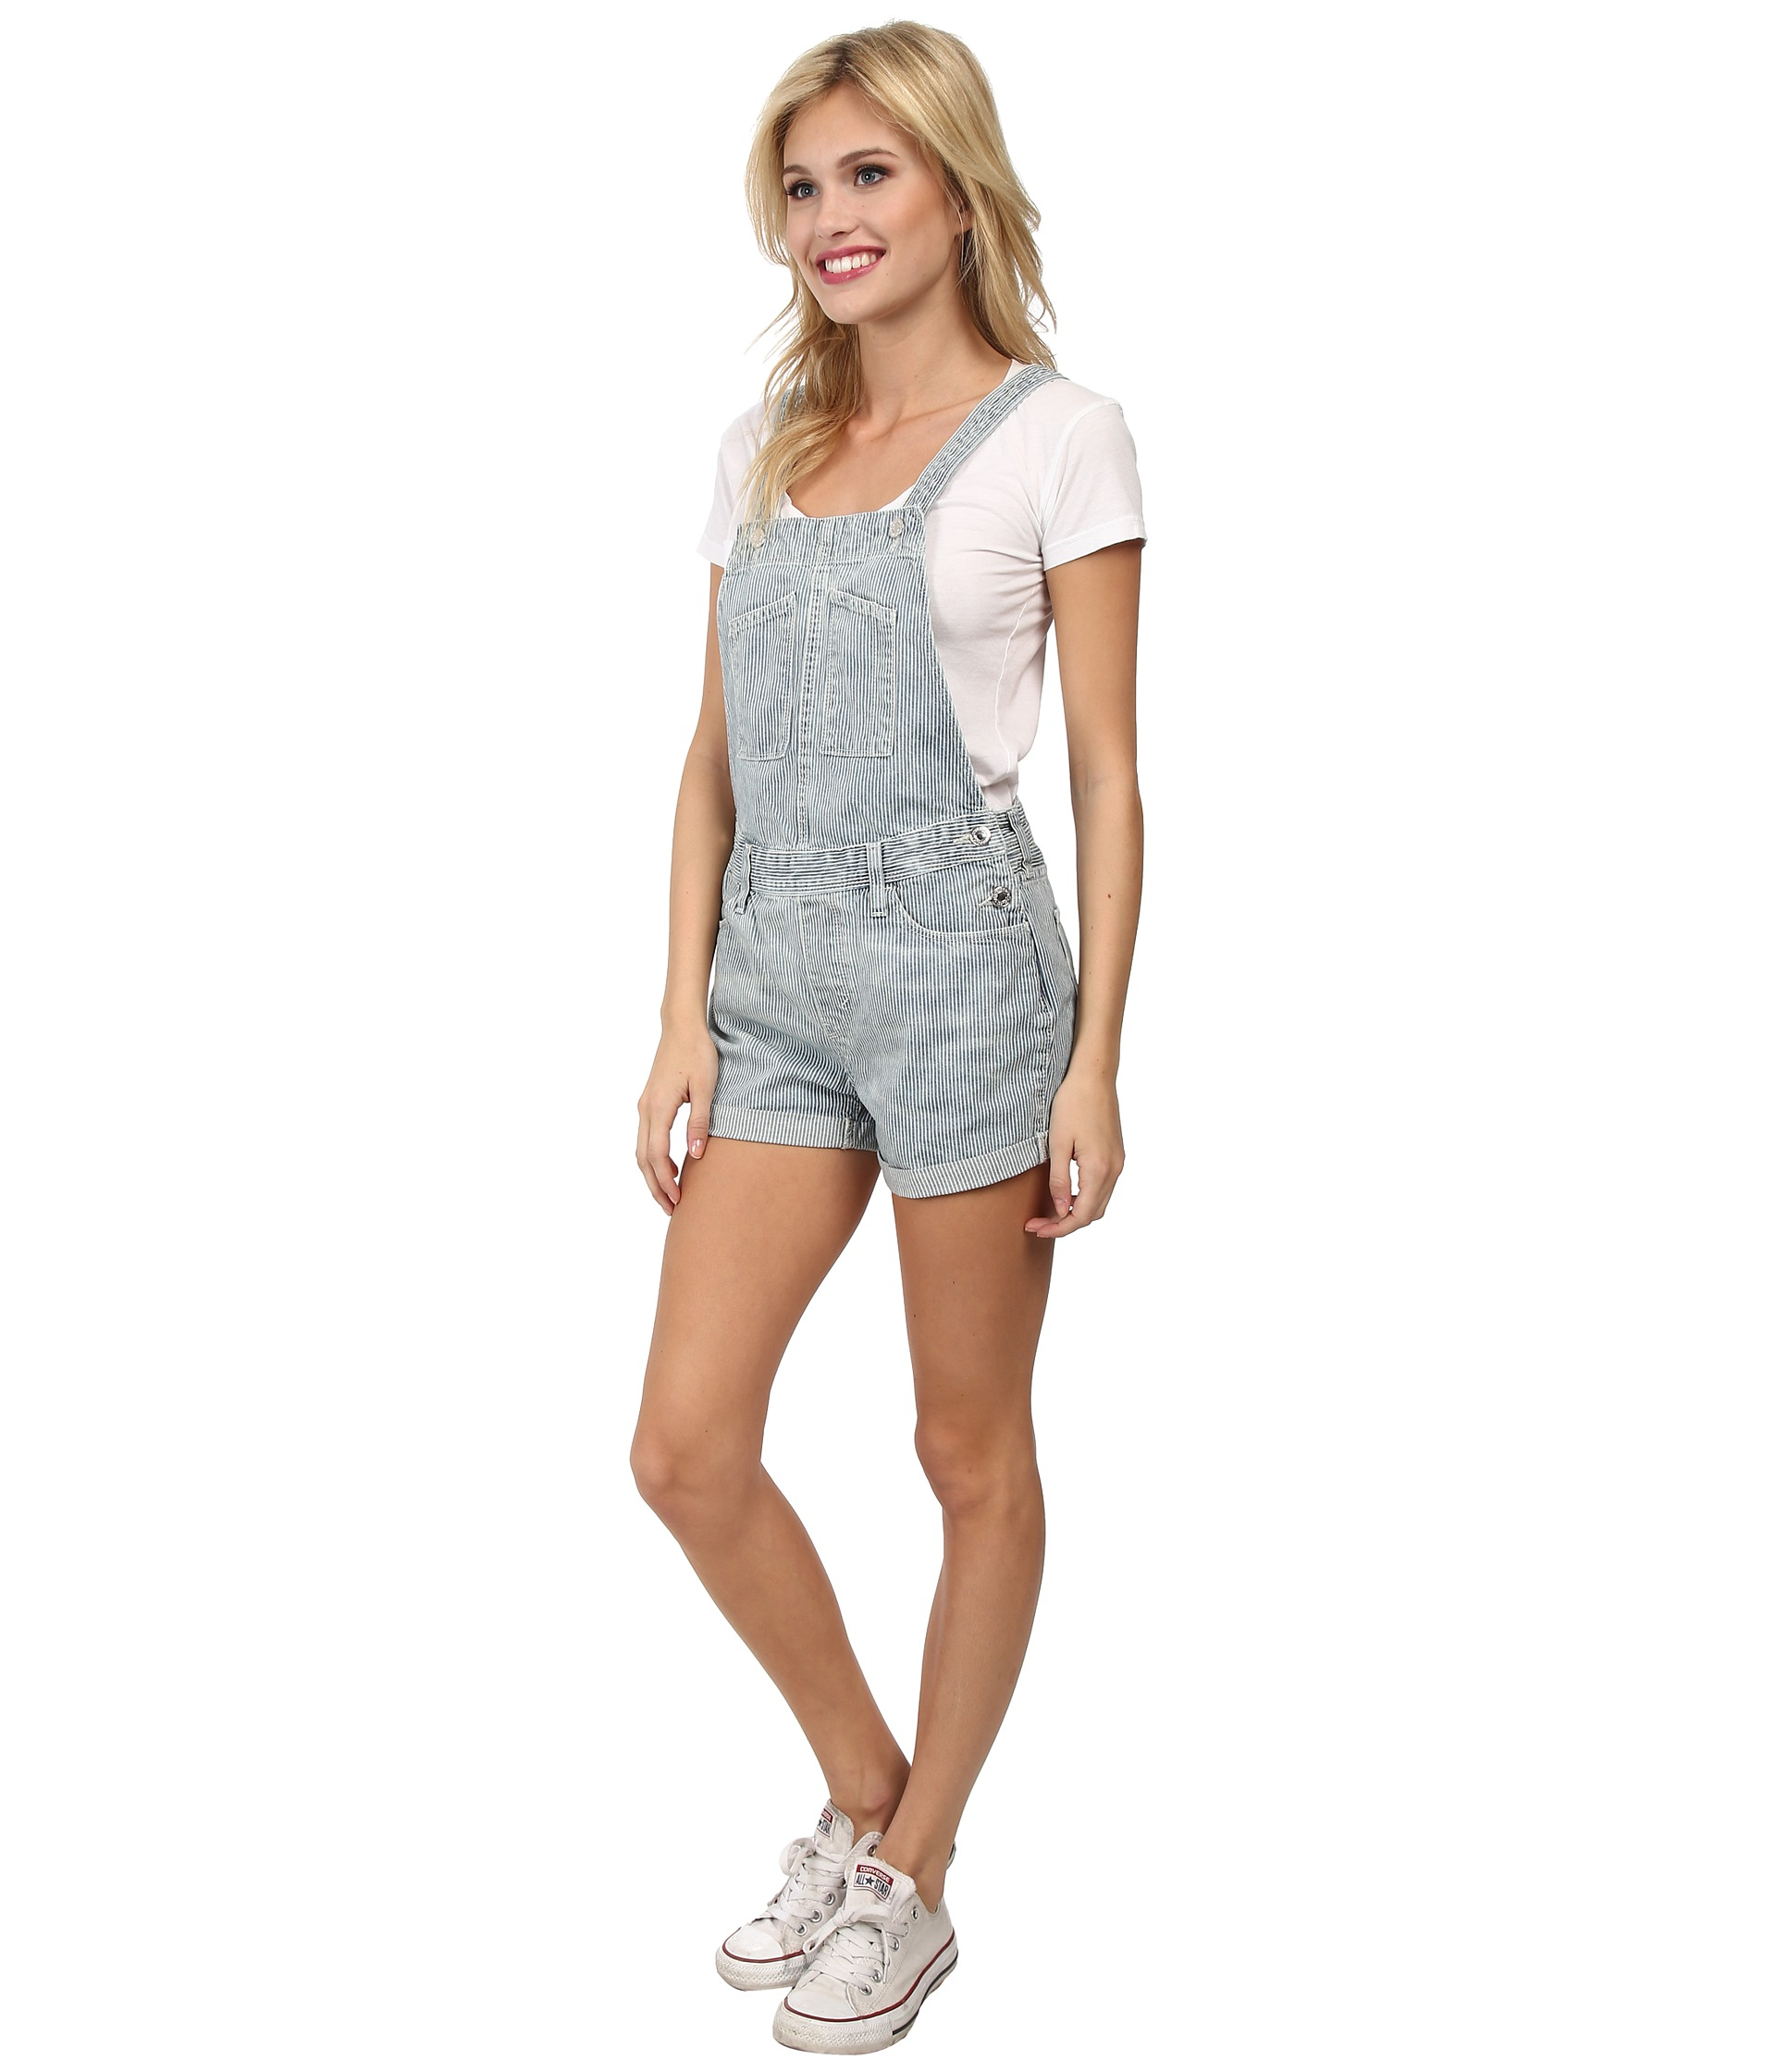 Zappos is an online retailer of clothes based out of Las Vegas, NV. Recently Amazon acquired Zappos, integrating it into the Amazon online family of products and services that is fully supported with Amazon's online payment and customer service paradigm/5(21).